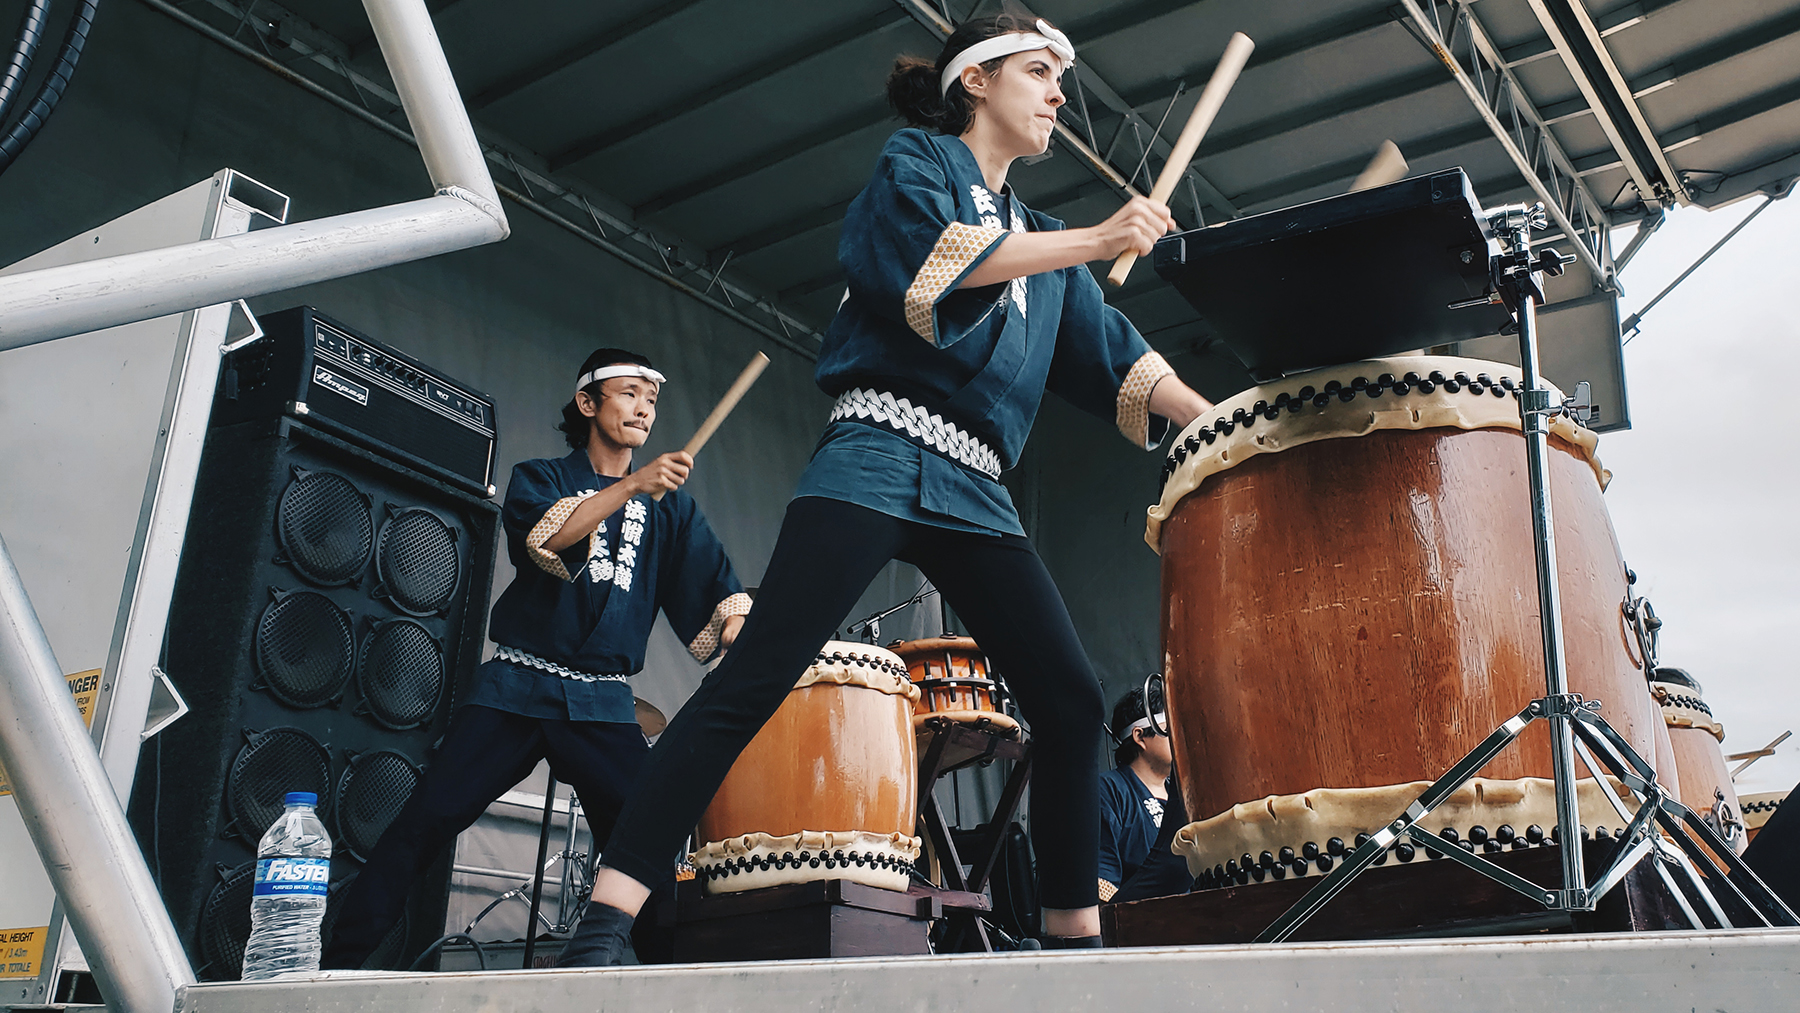 The Ho Etsu Taiko drum group of Chicago will return to perform at this year's Matsuri Festival.